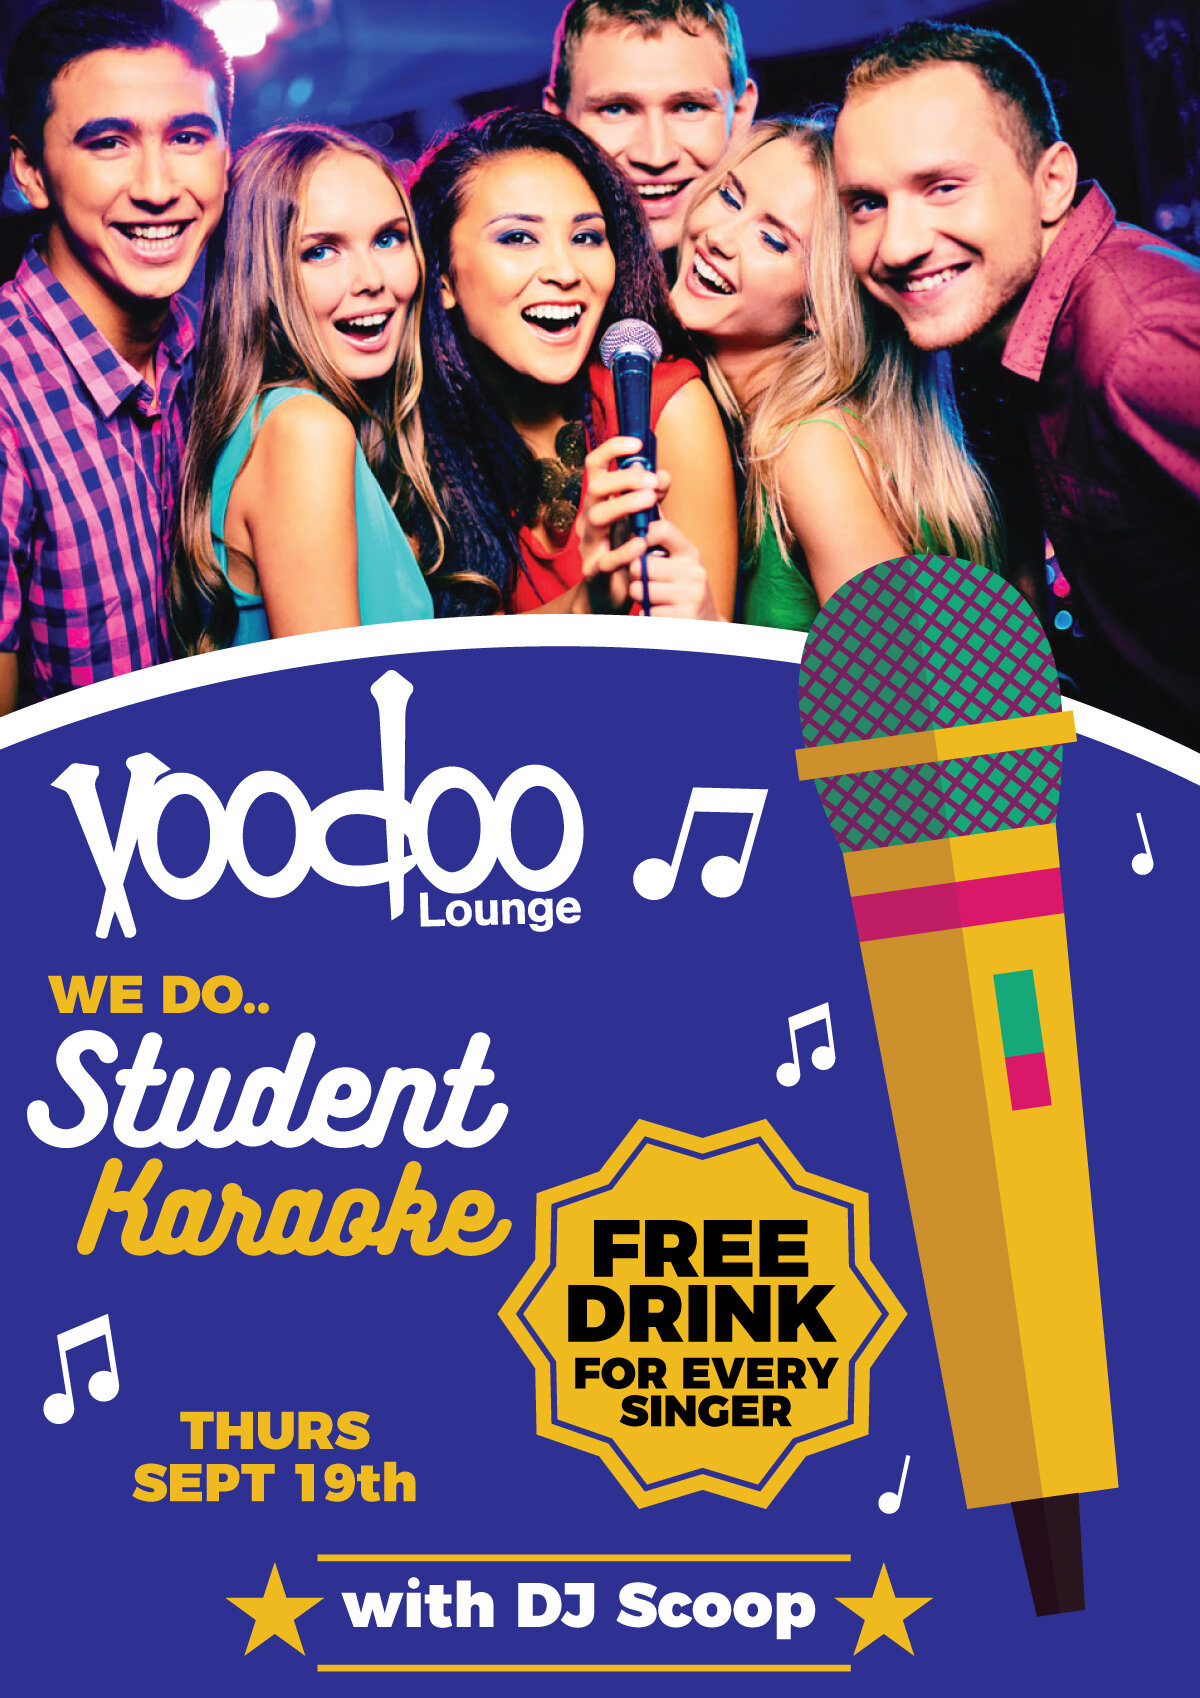 voodoo-venue---thurs---We-Do-Student-Karaoke-thurs-sept-19-2019.jpg